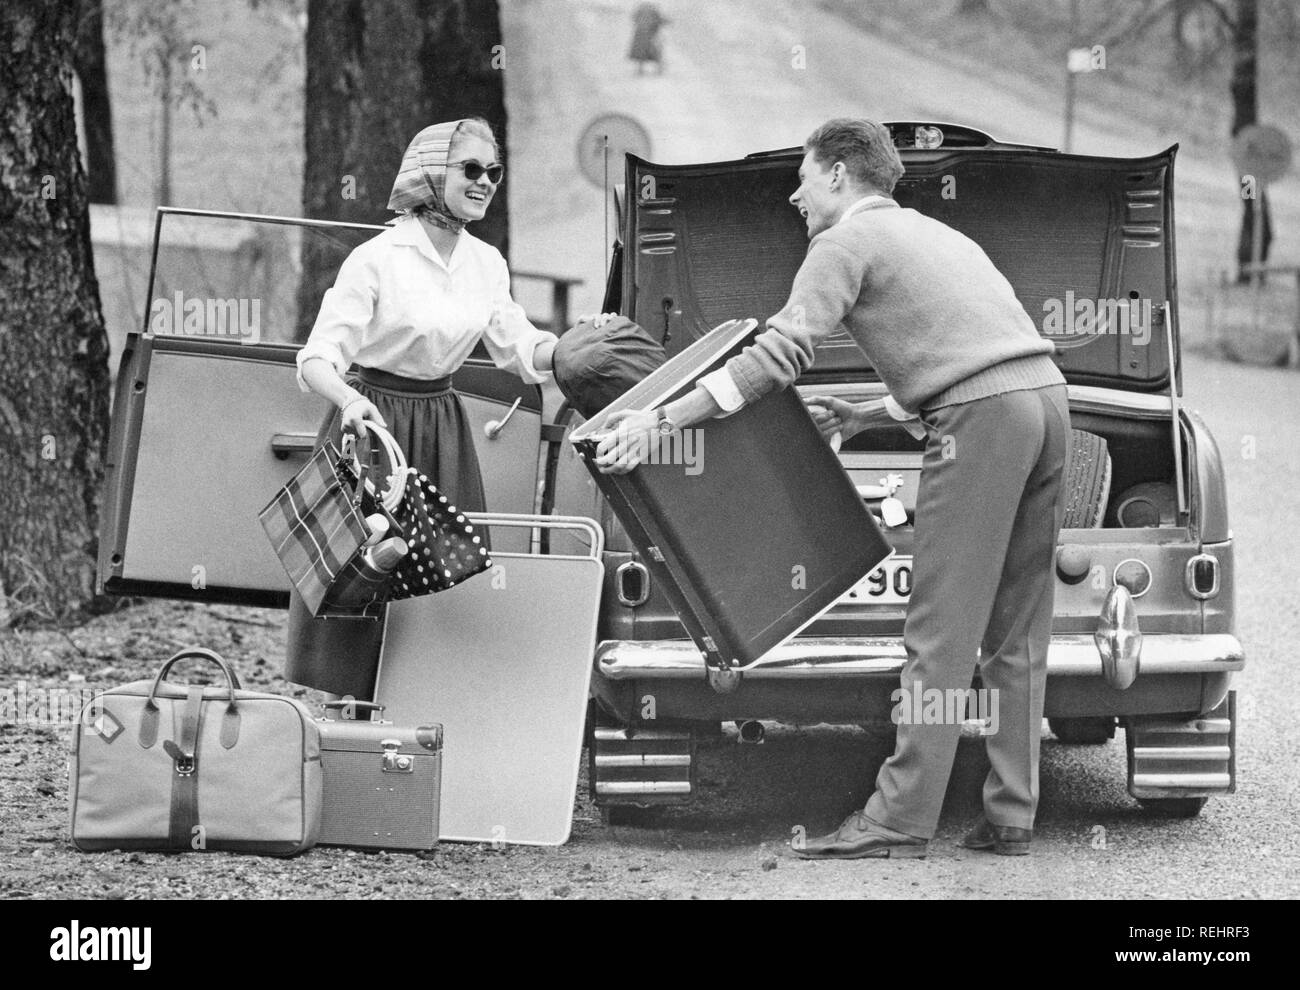 Couple in the 1960s. A young couple are packing the trunk of their car with luggage and camping gear for a car vacation. A practical folding table is also packed. She is dressed in a typical 1950s manor with a white shirt, wide skirt, sunglasses and her hair in a scarf. Sweden 1957 Stock Photo